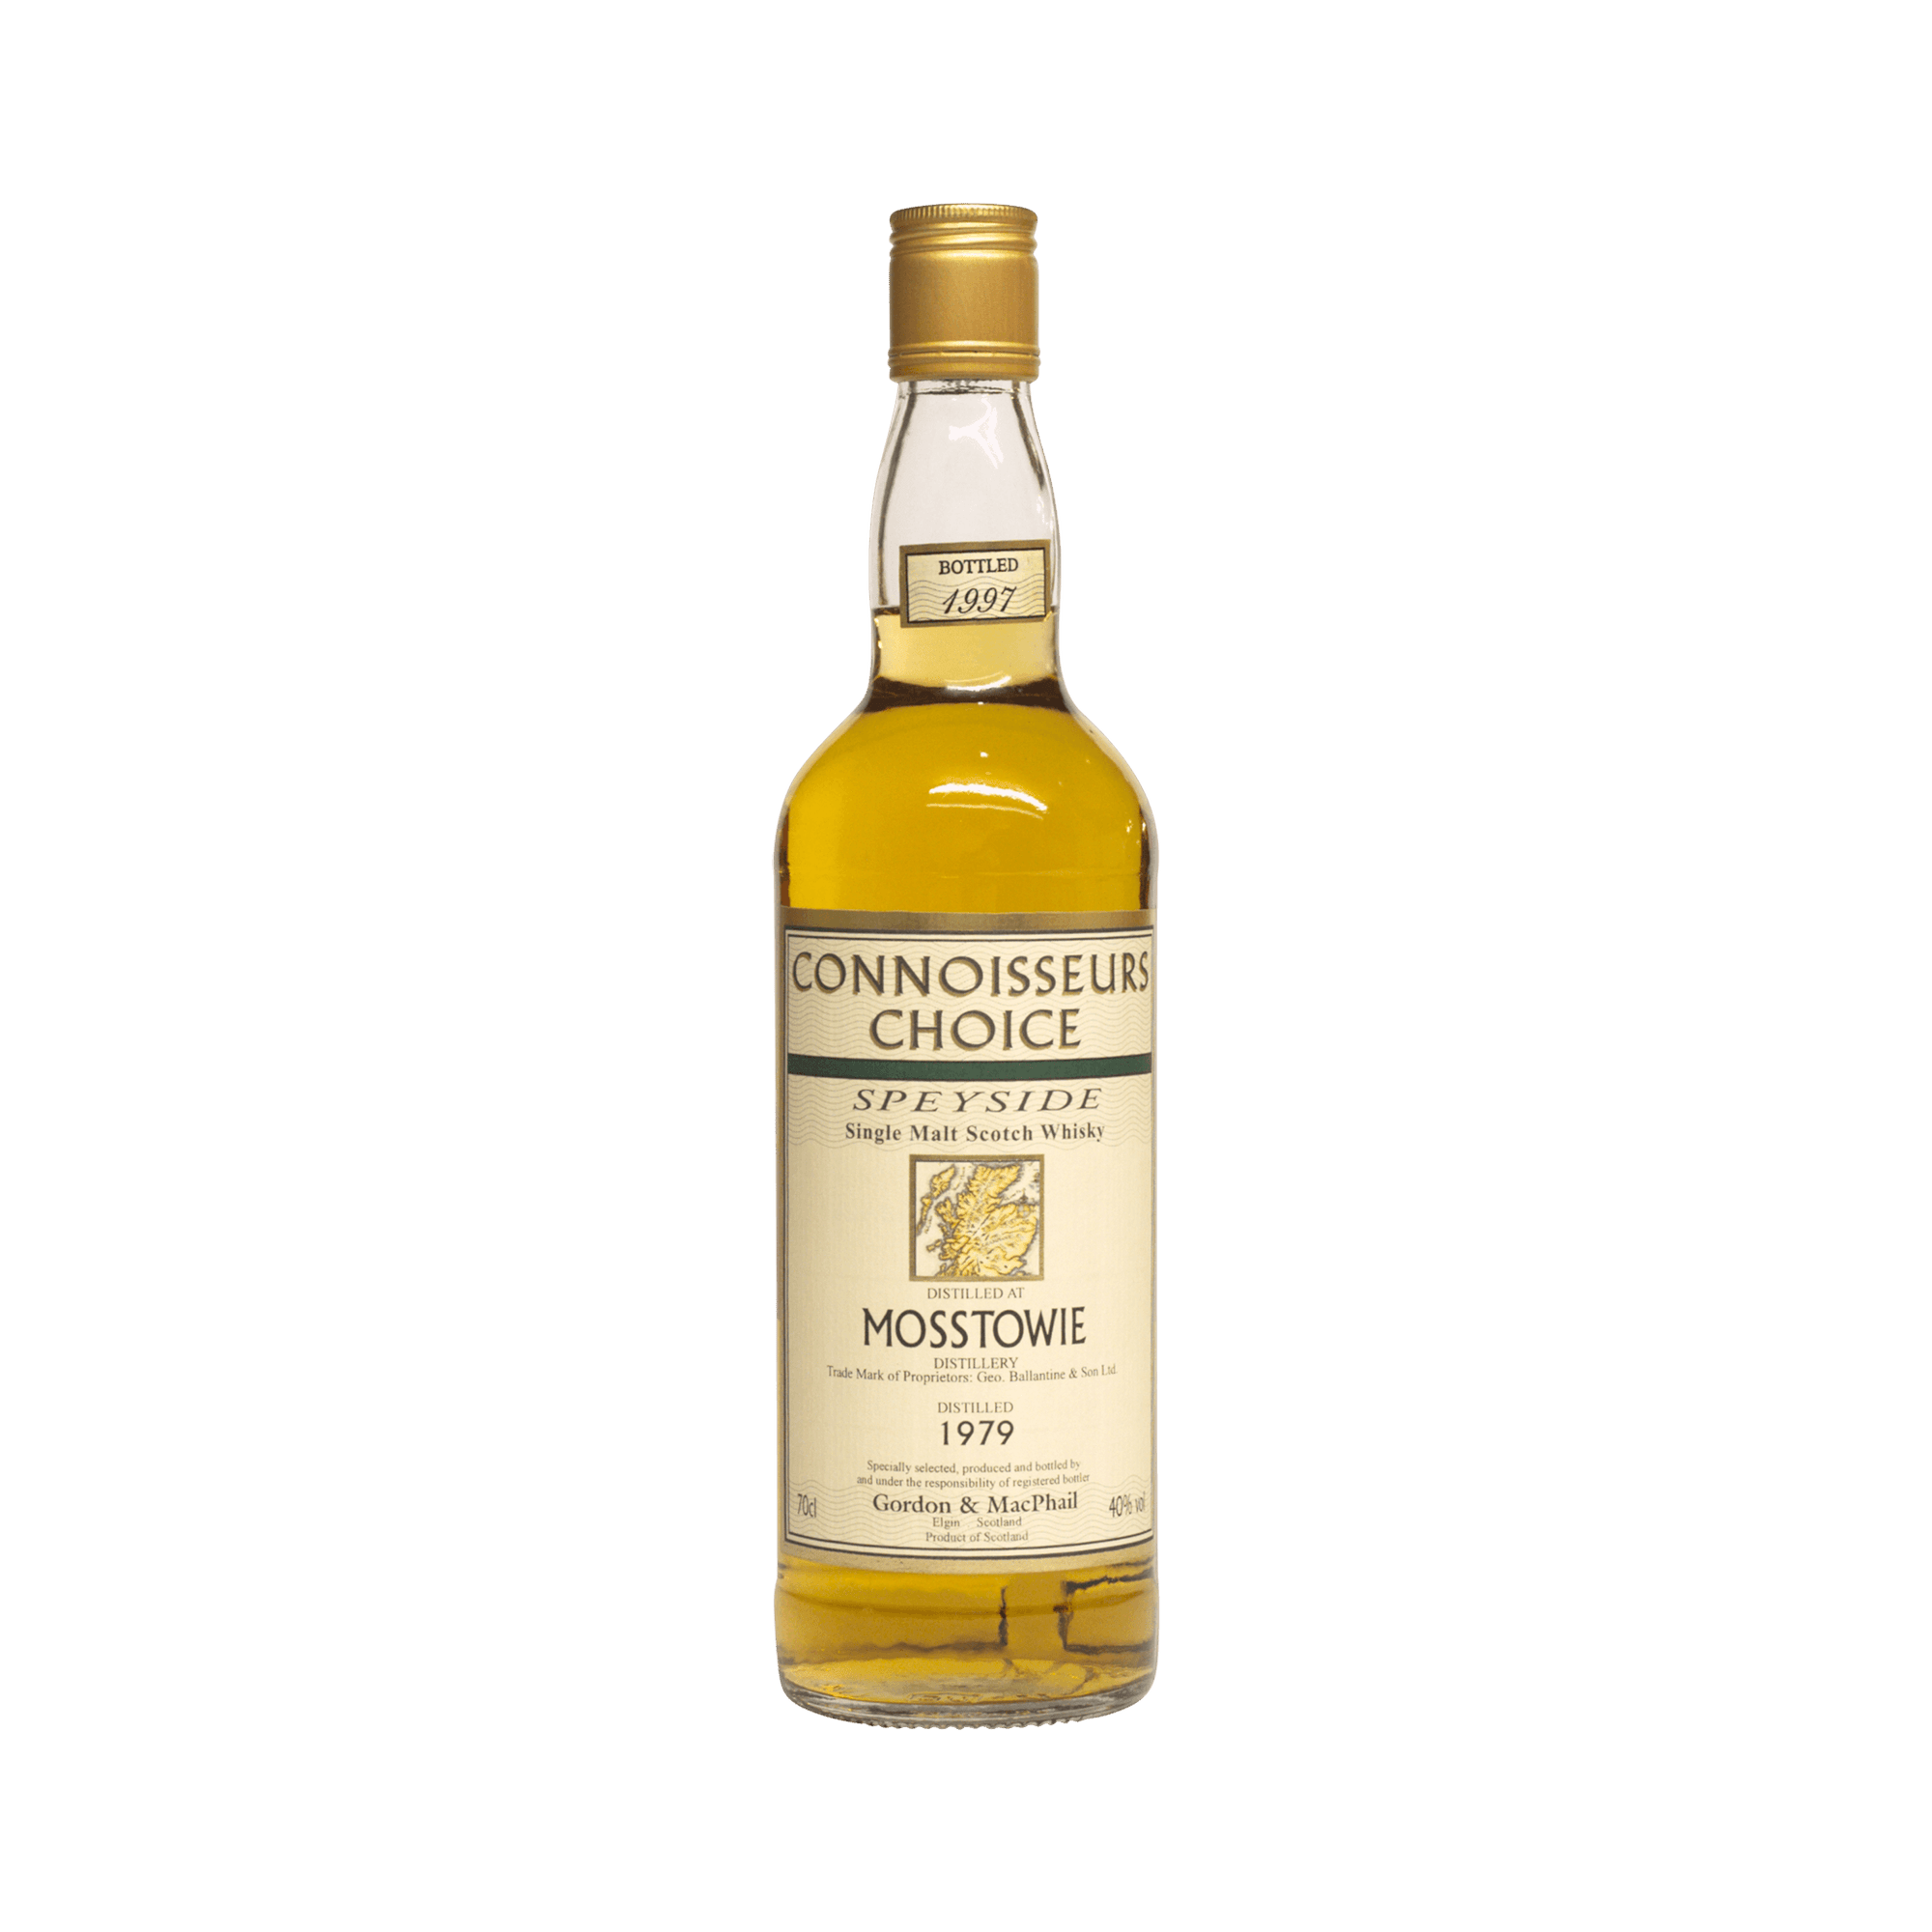 Mosstowie 1979 18 Year Old 'Connoisseurs Choice' Gordon & MacPhail 40.00%